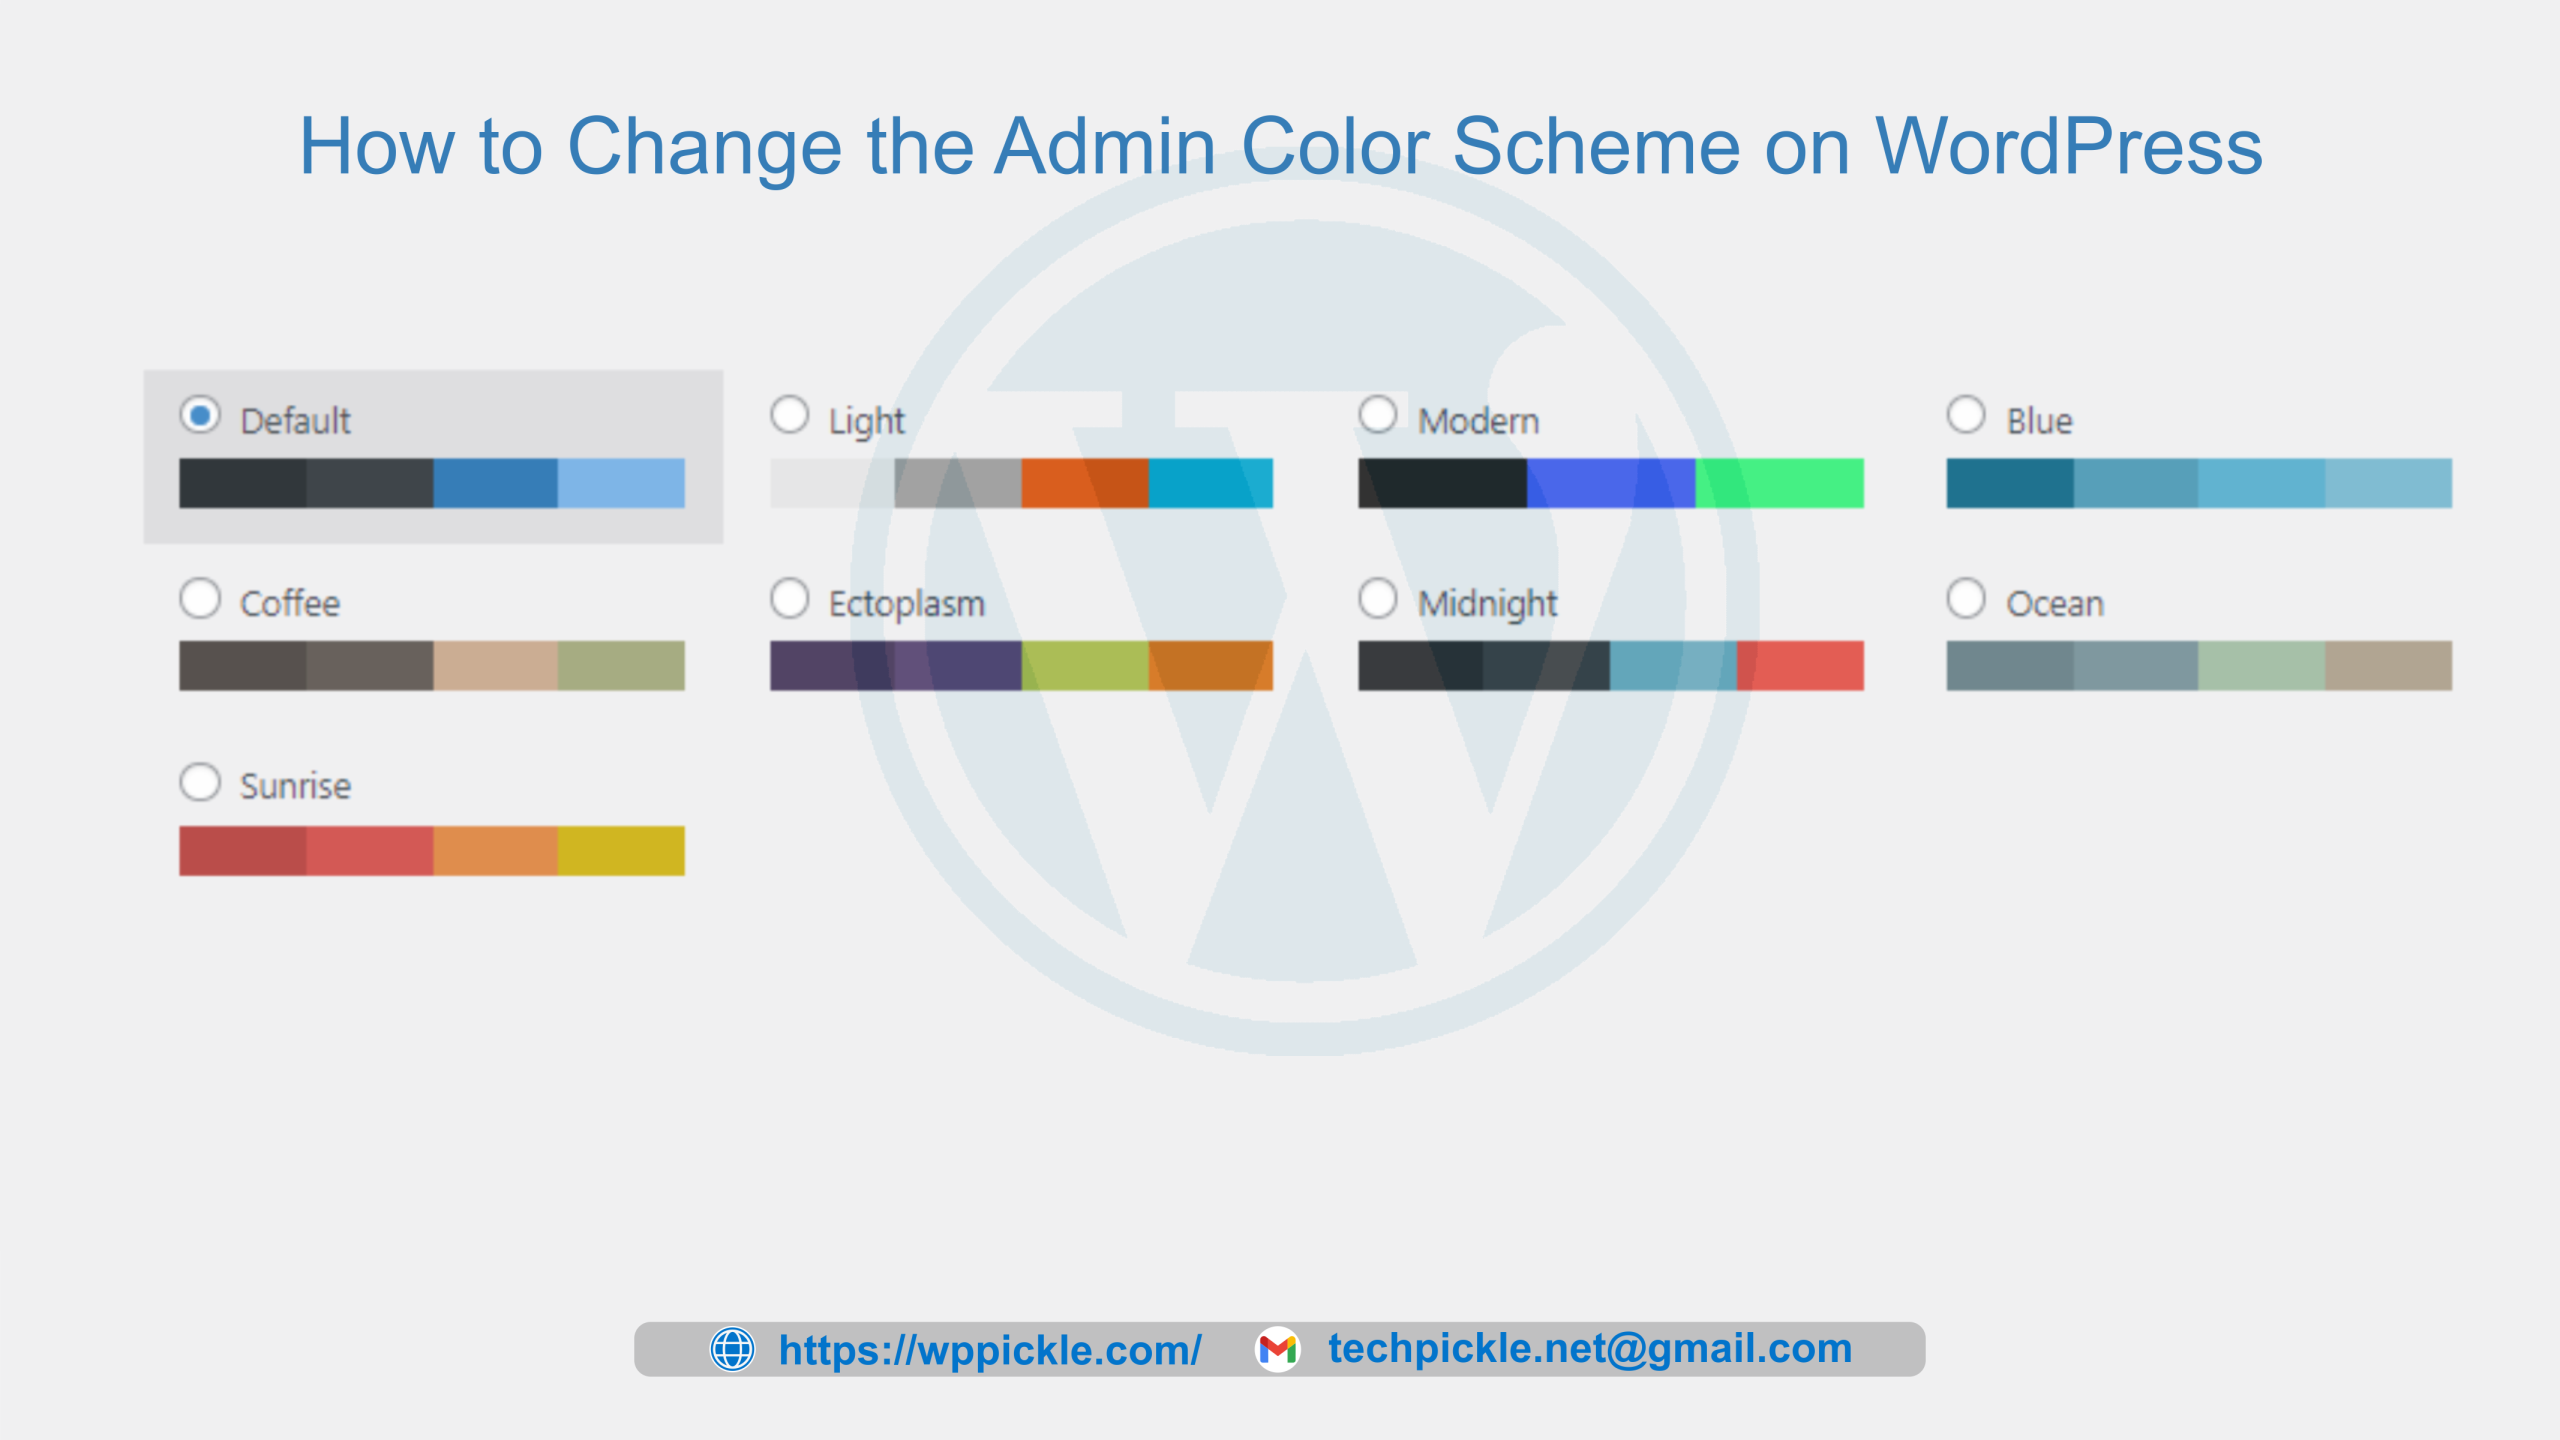 How to Change the Admin Color Scheme on WordPress